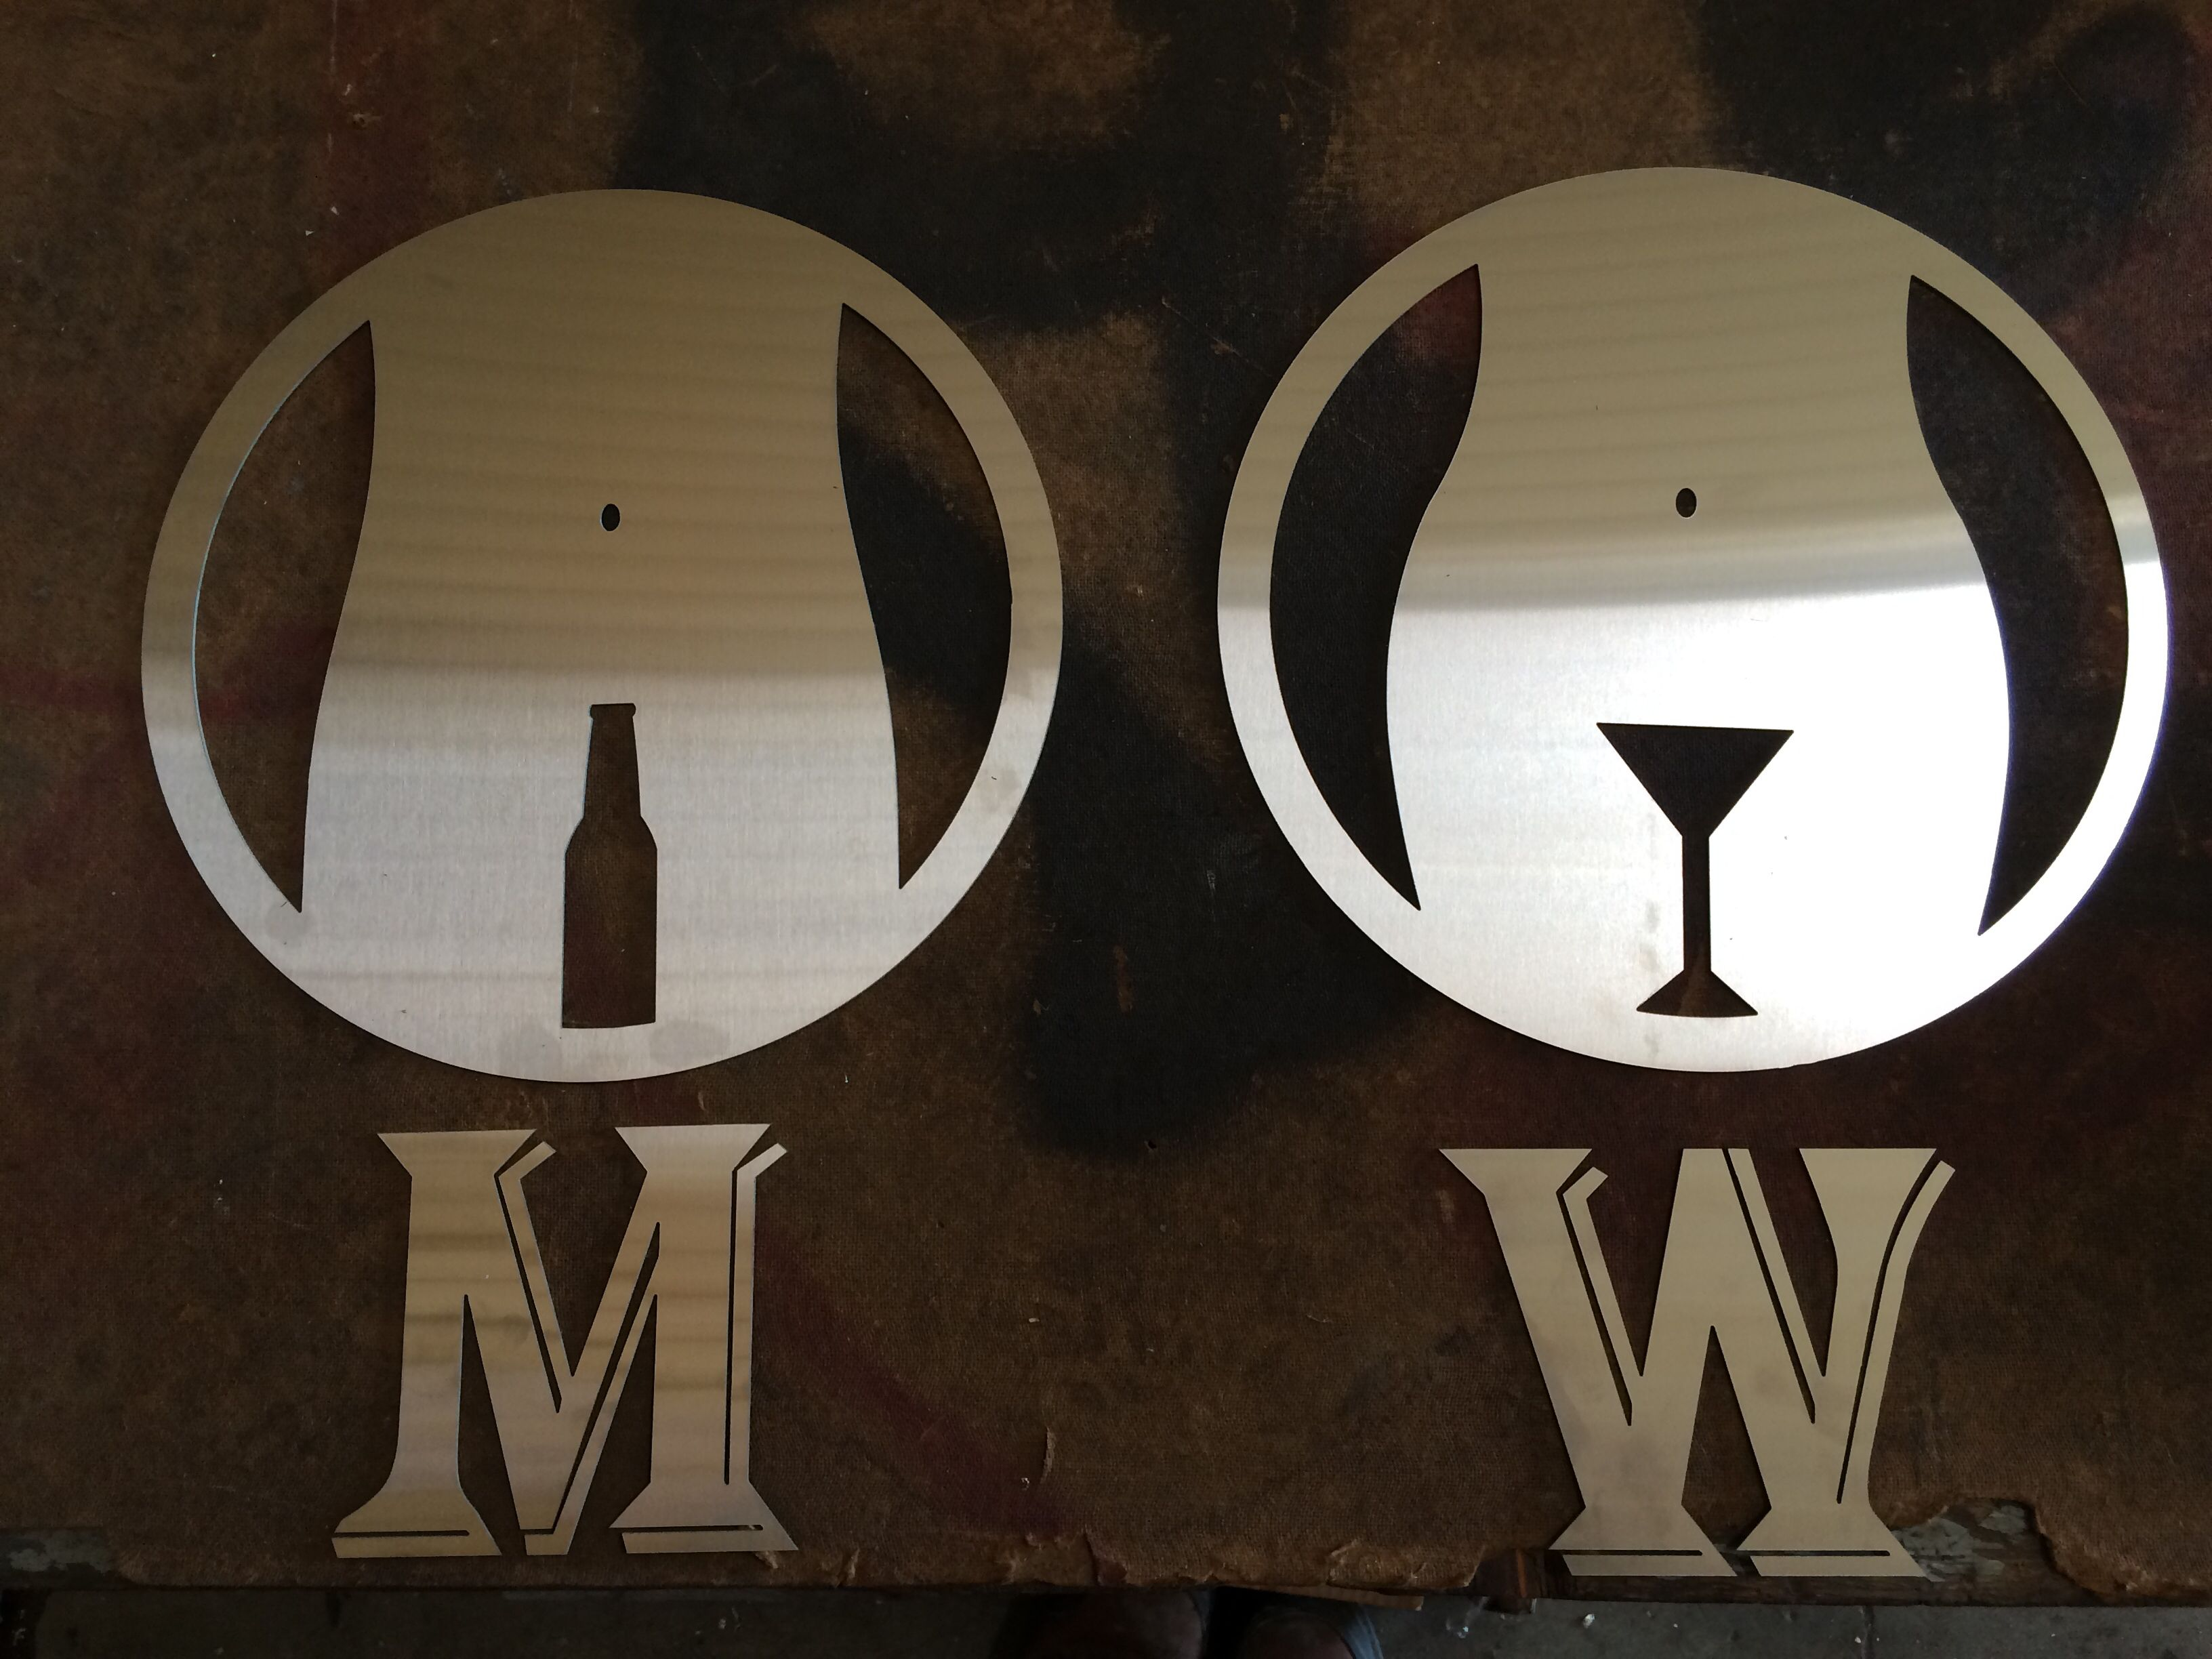 Men S And Woman Restroom Signs Waterjet Cut At Feni Technologies From 20 Gage Stainless Steel